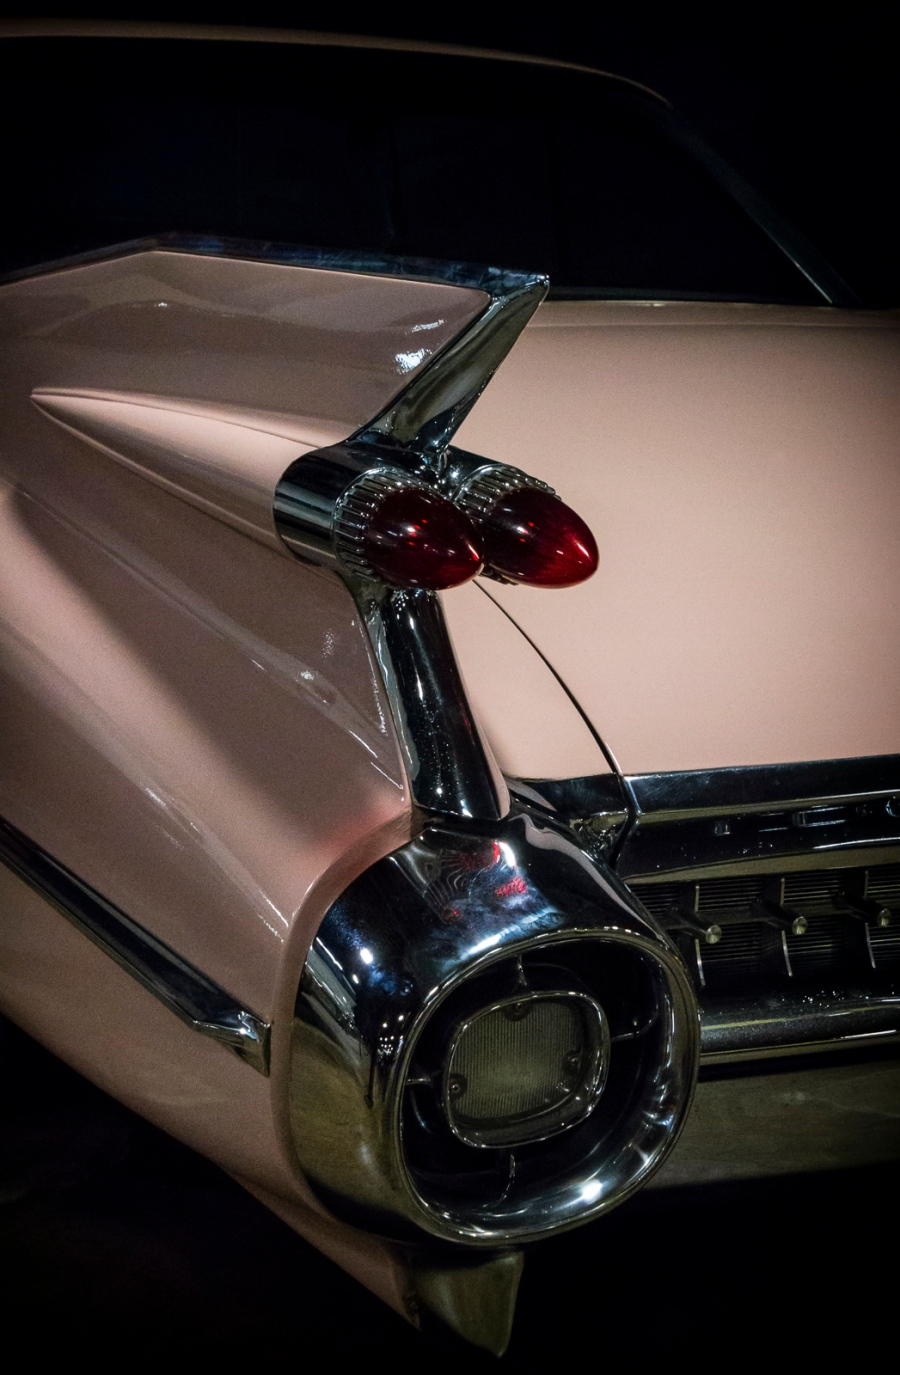 1959 Cadillac California Automobile Museum - http://www.calautomuseum.org - Sacramento, California, U.S.A. - March 31, 2016